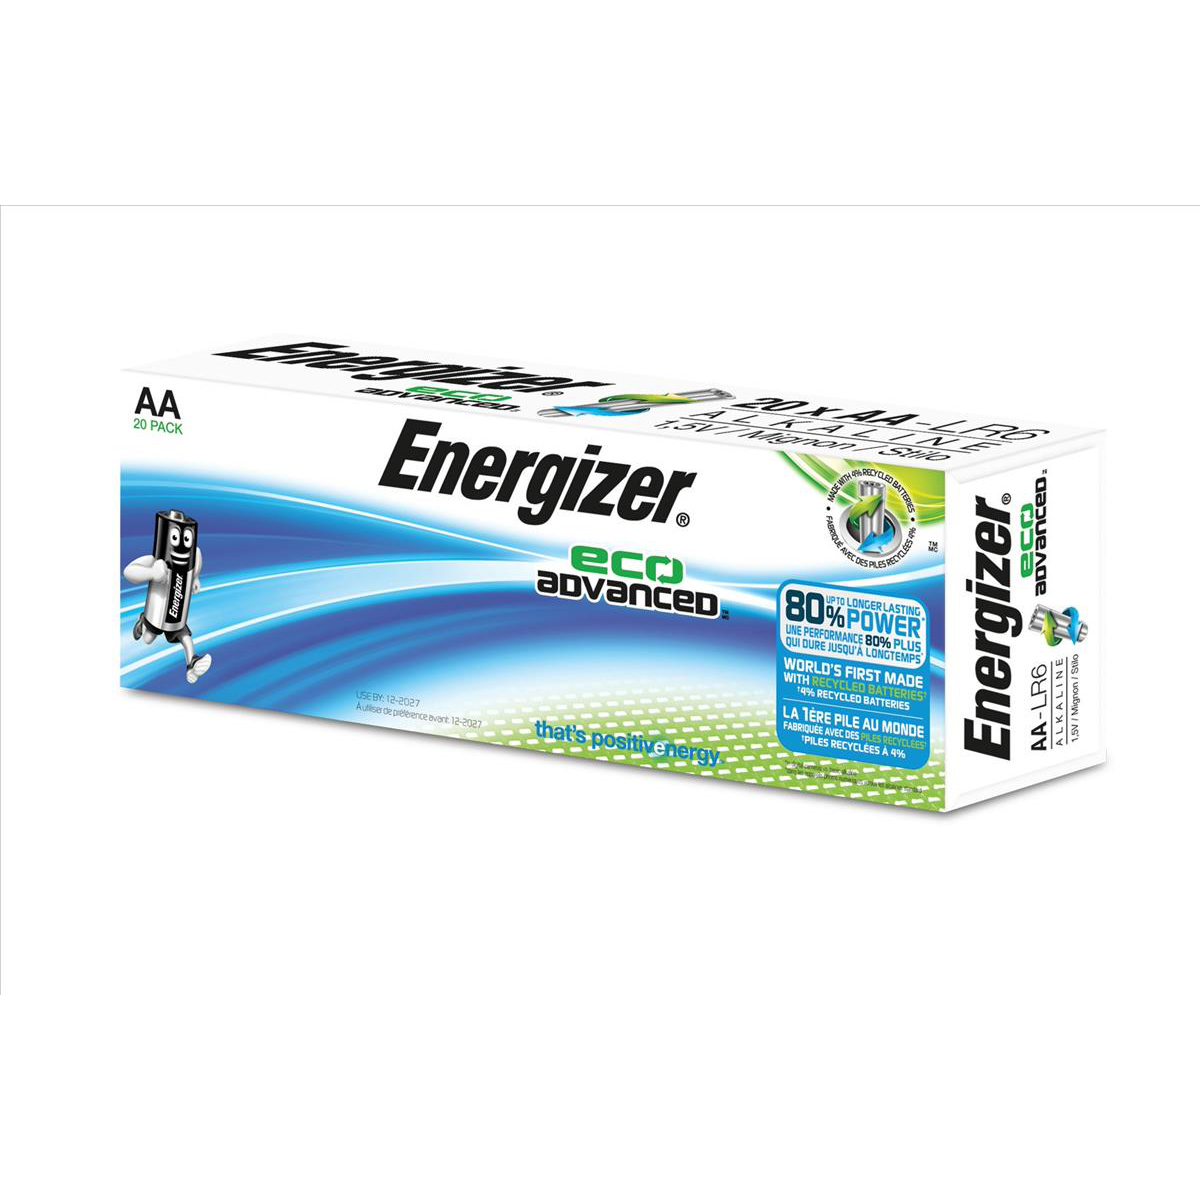 Energizer Eco Advance Batteries AA / E91 Ref E300487800 Pack 20